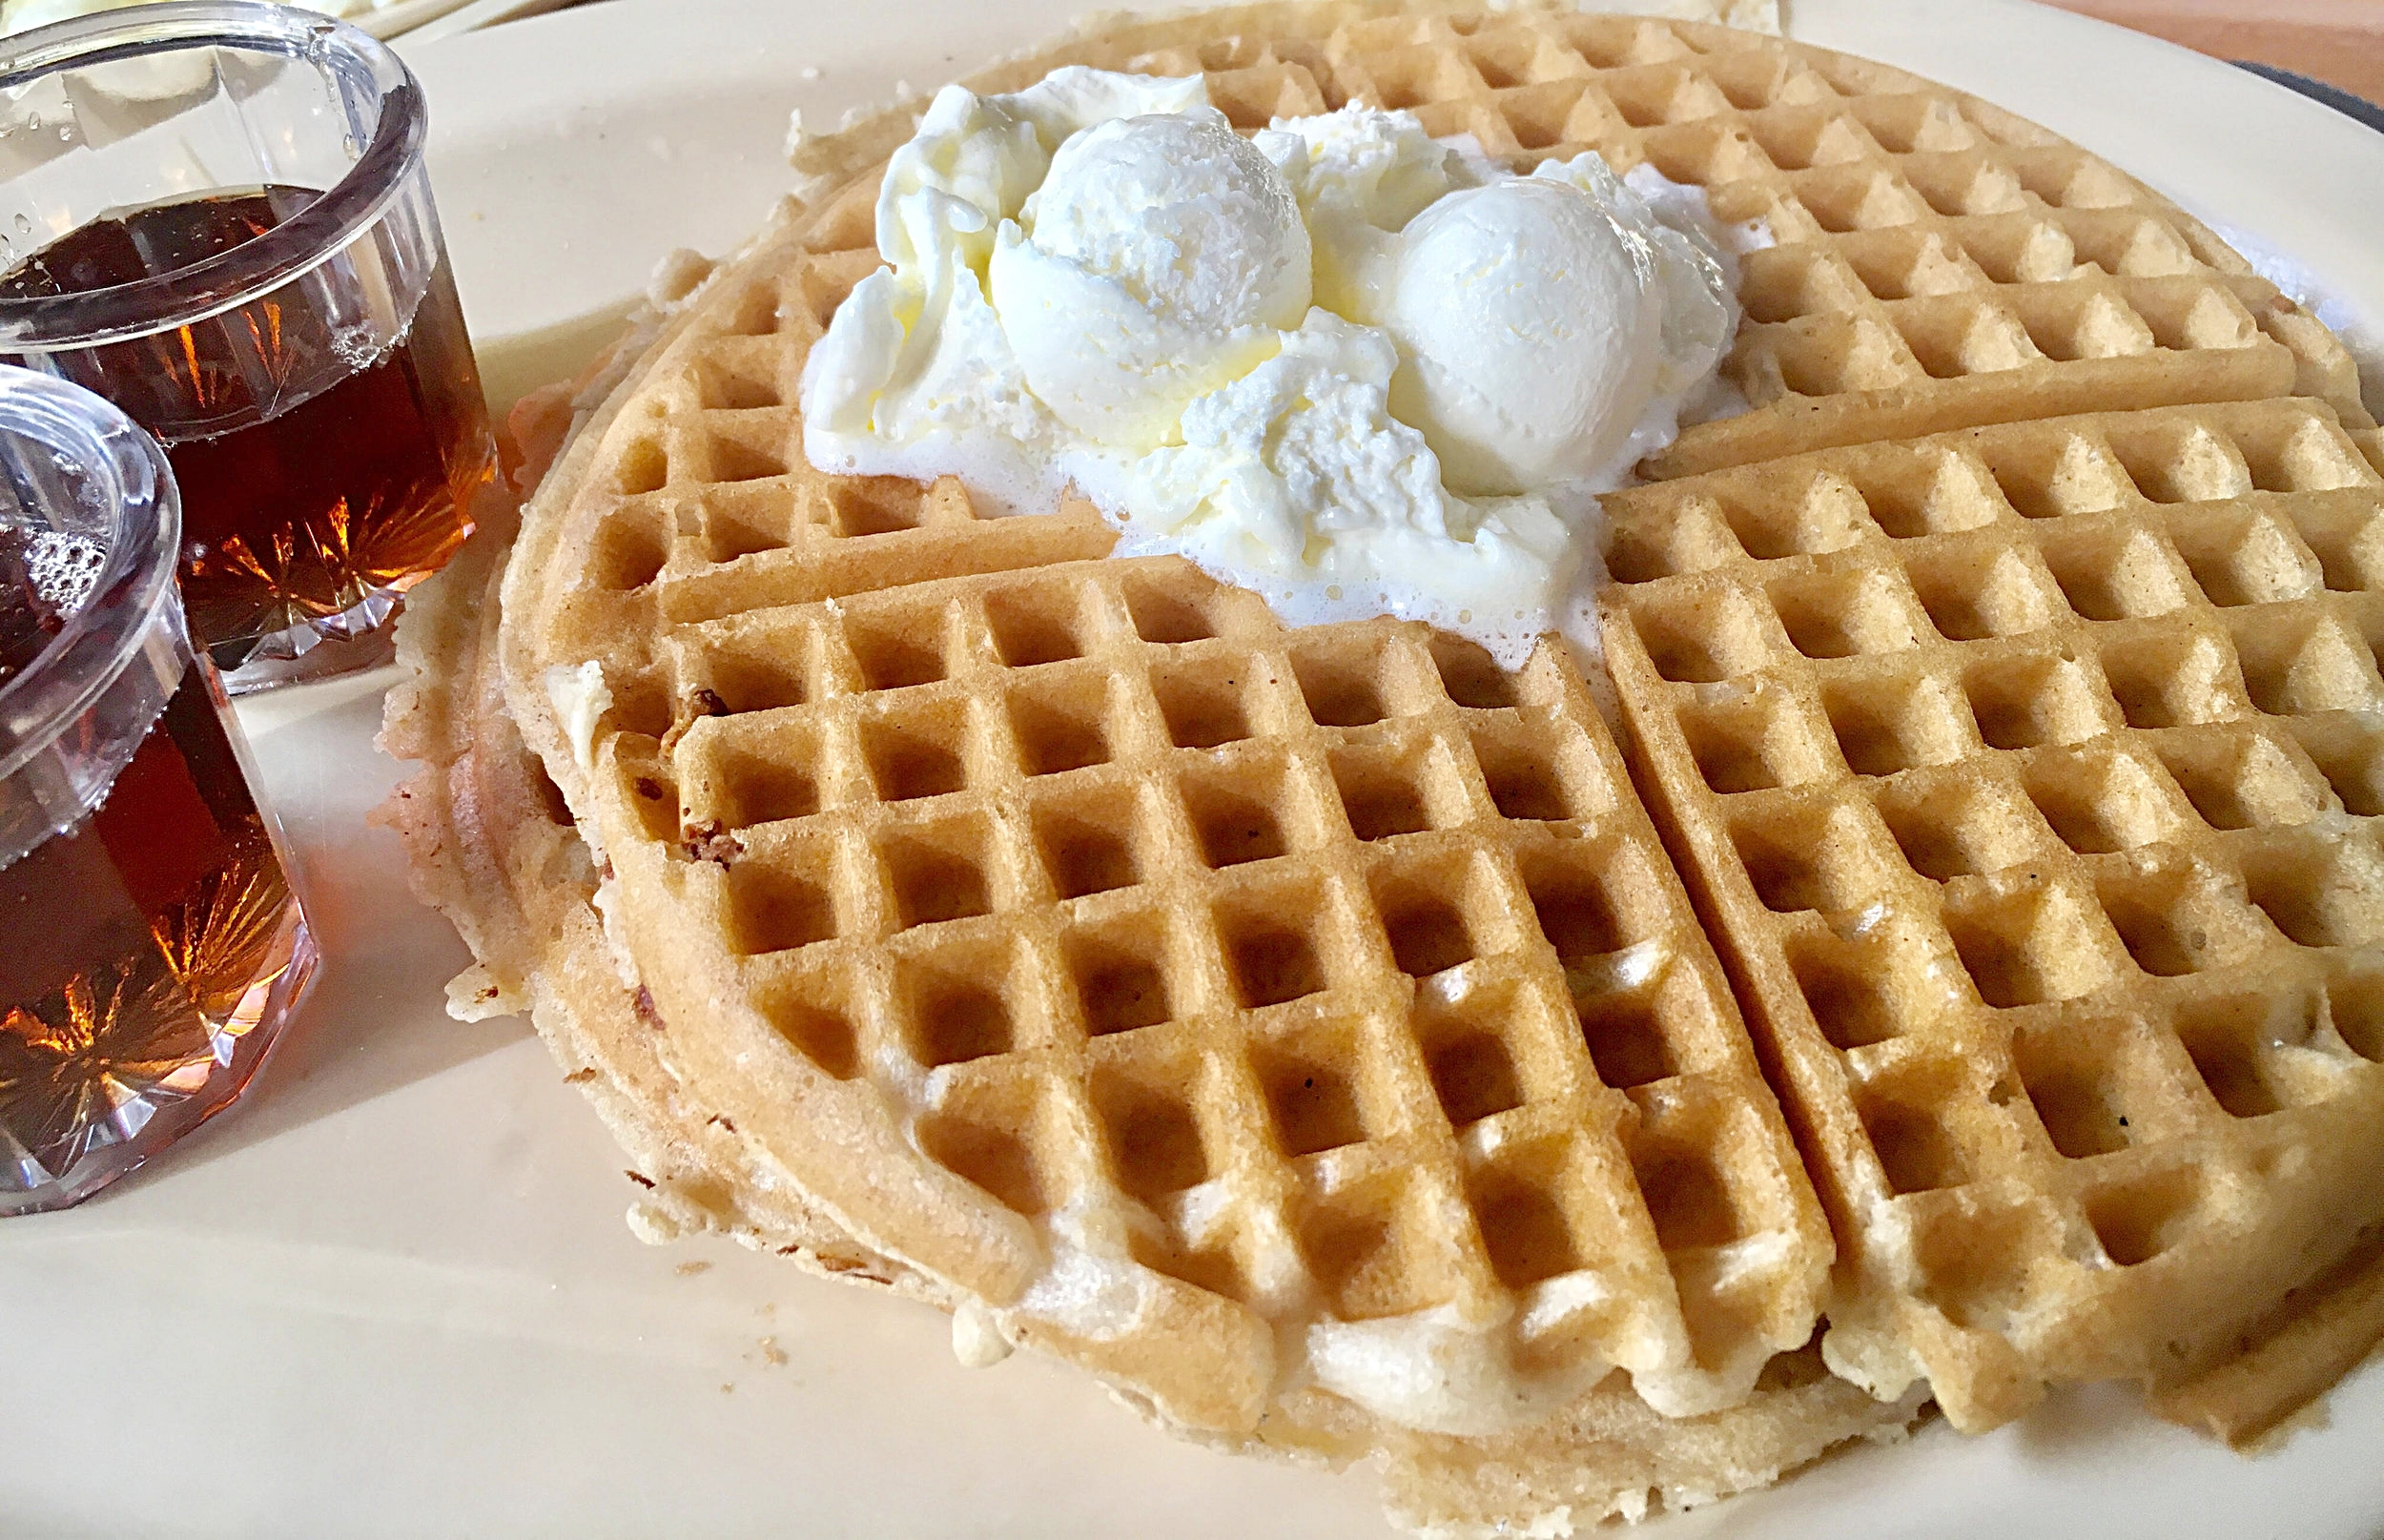 Of course Waffles! Nothing but good eating @Roscoes - Inglewood, CA